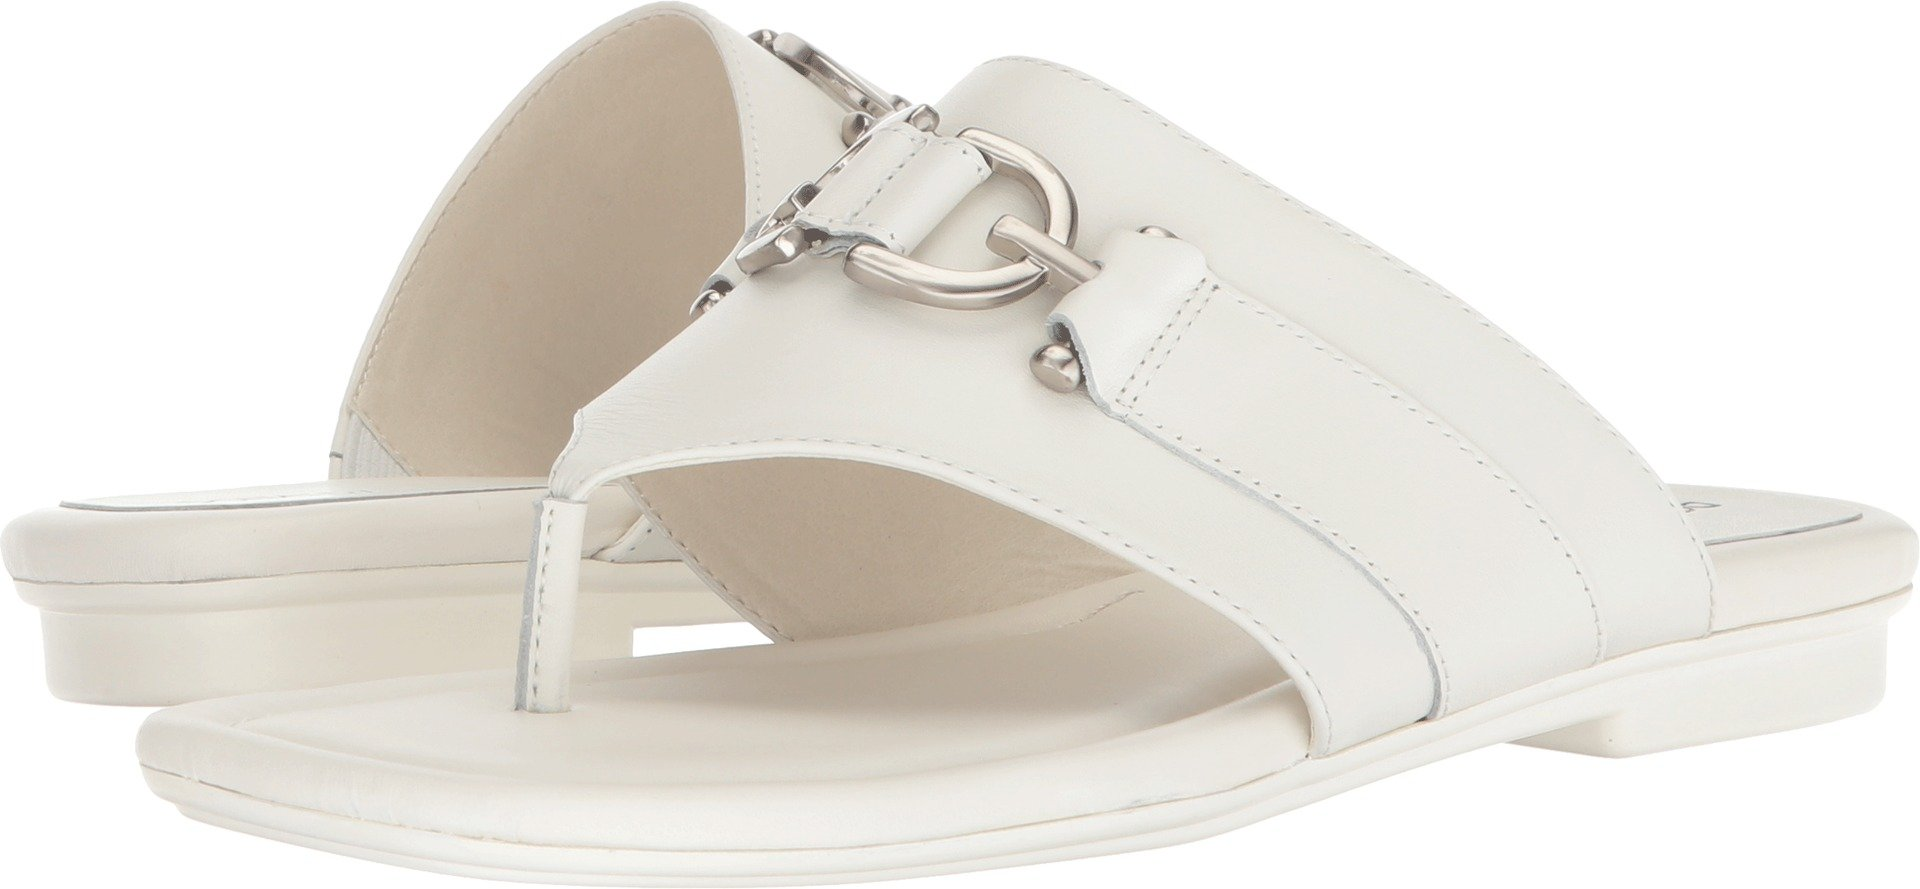 Donald J Pliner Women's Kent Slide Sandal, Bone, 9 Medium US